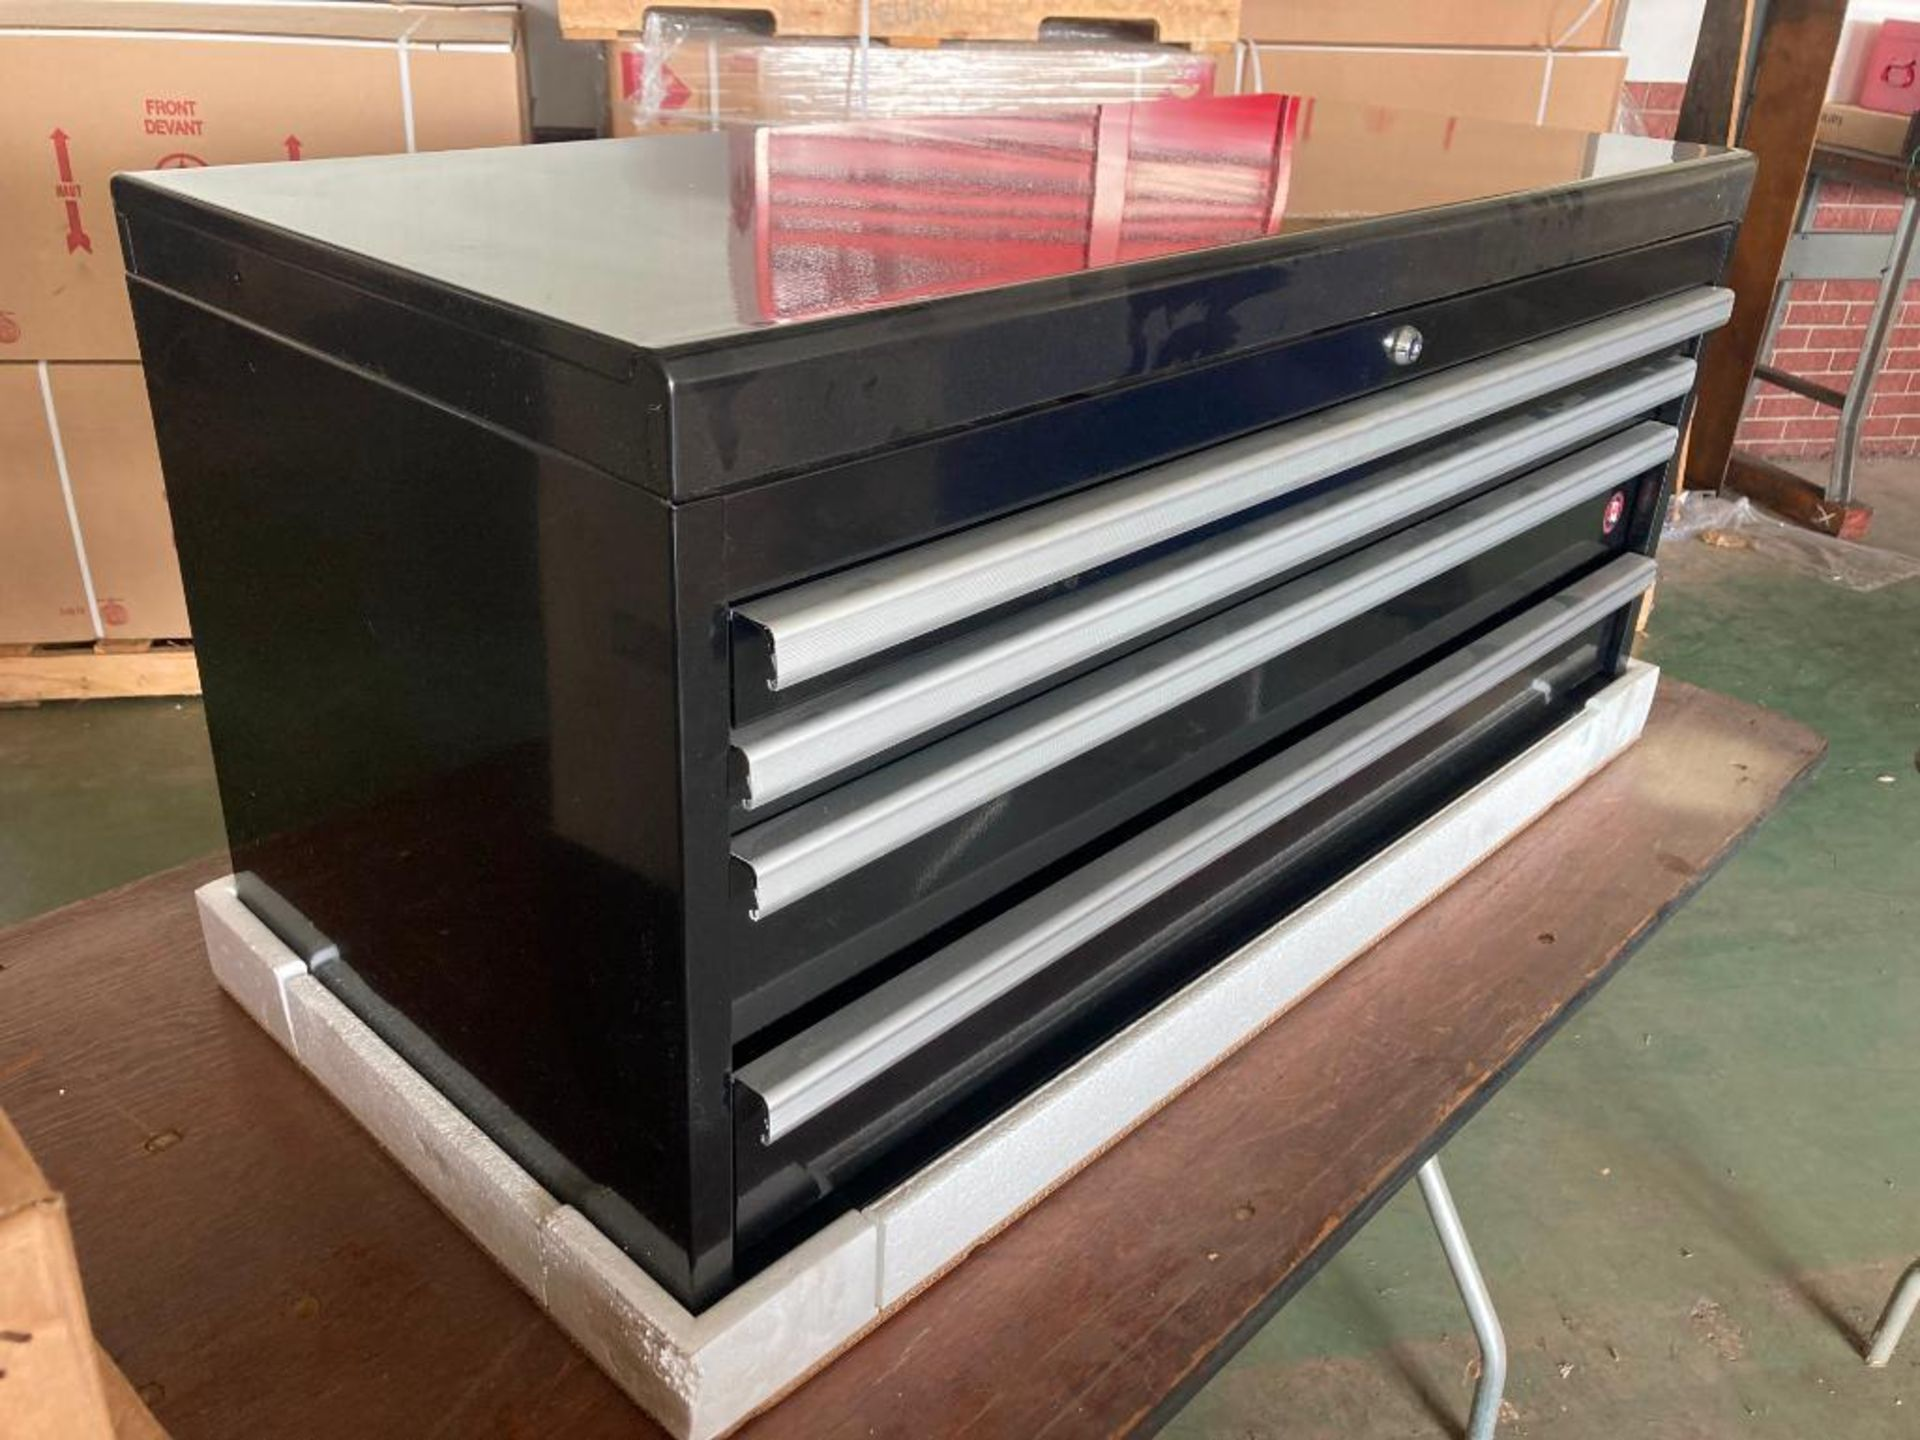 (NEW) INTERNATIONAL 4-DRAWER TOP TOOL CHEST, 40'' X 18'', BLACK - Image 2 of 2